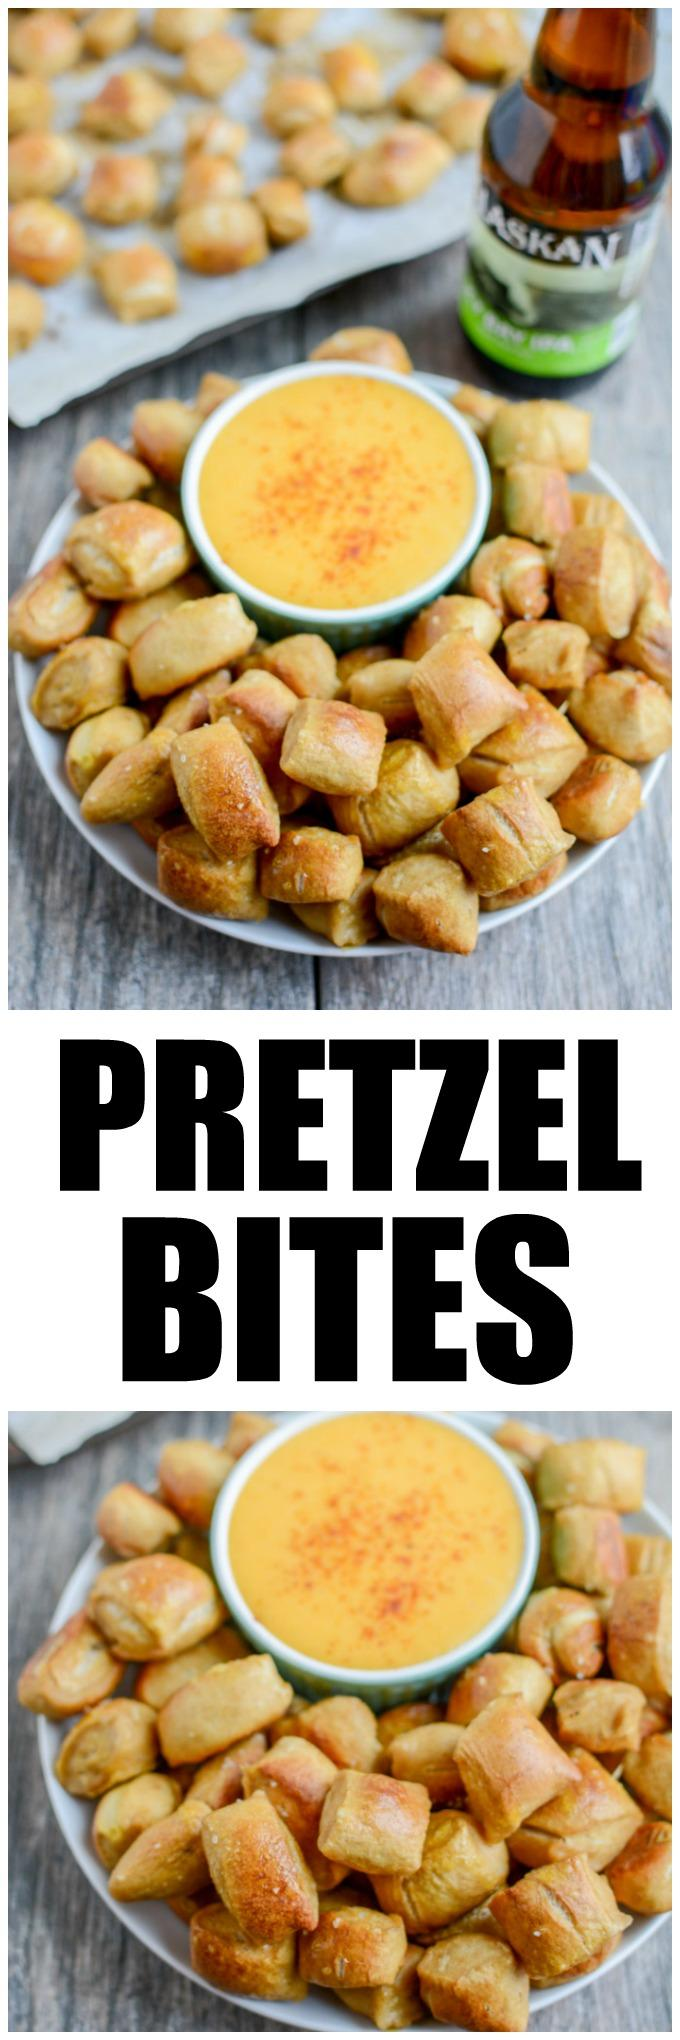 These Homemade Soft Pretzels can be made into the traditional shape or cut into bites for a perfect game day or party appetizer!